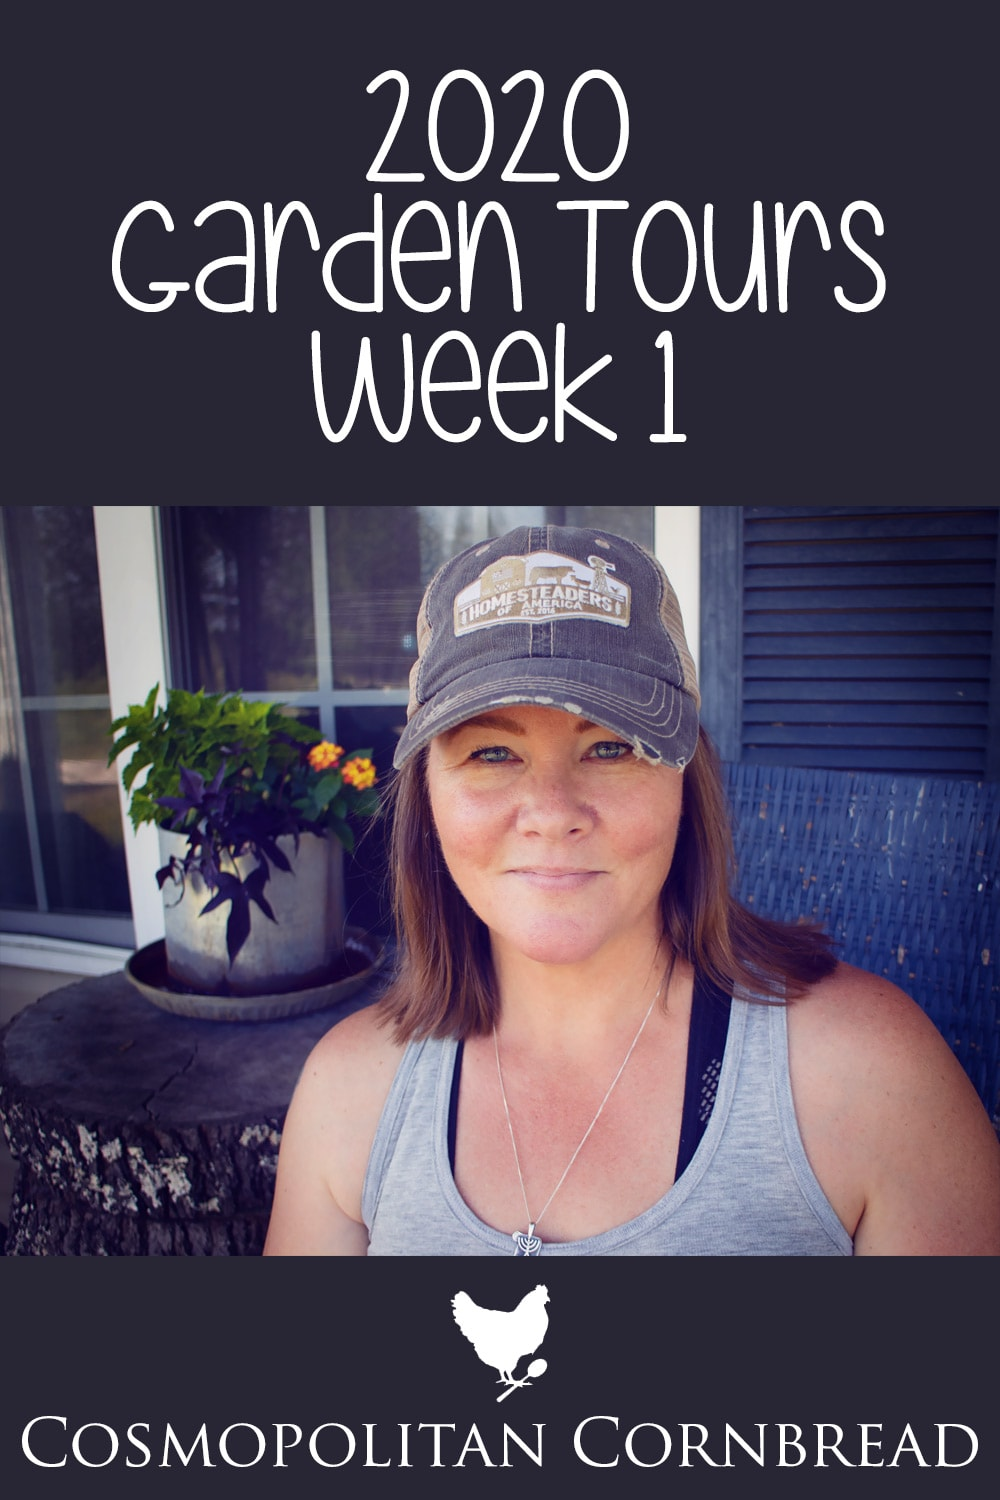 This week, we have been busy planting and getting the 2020 garden started! So you know what that means? Time to begin the weekly garden tours!